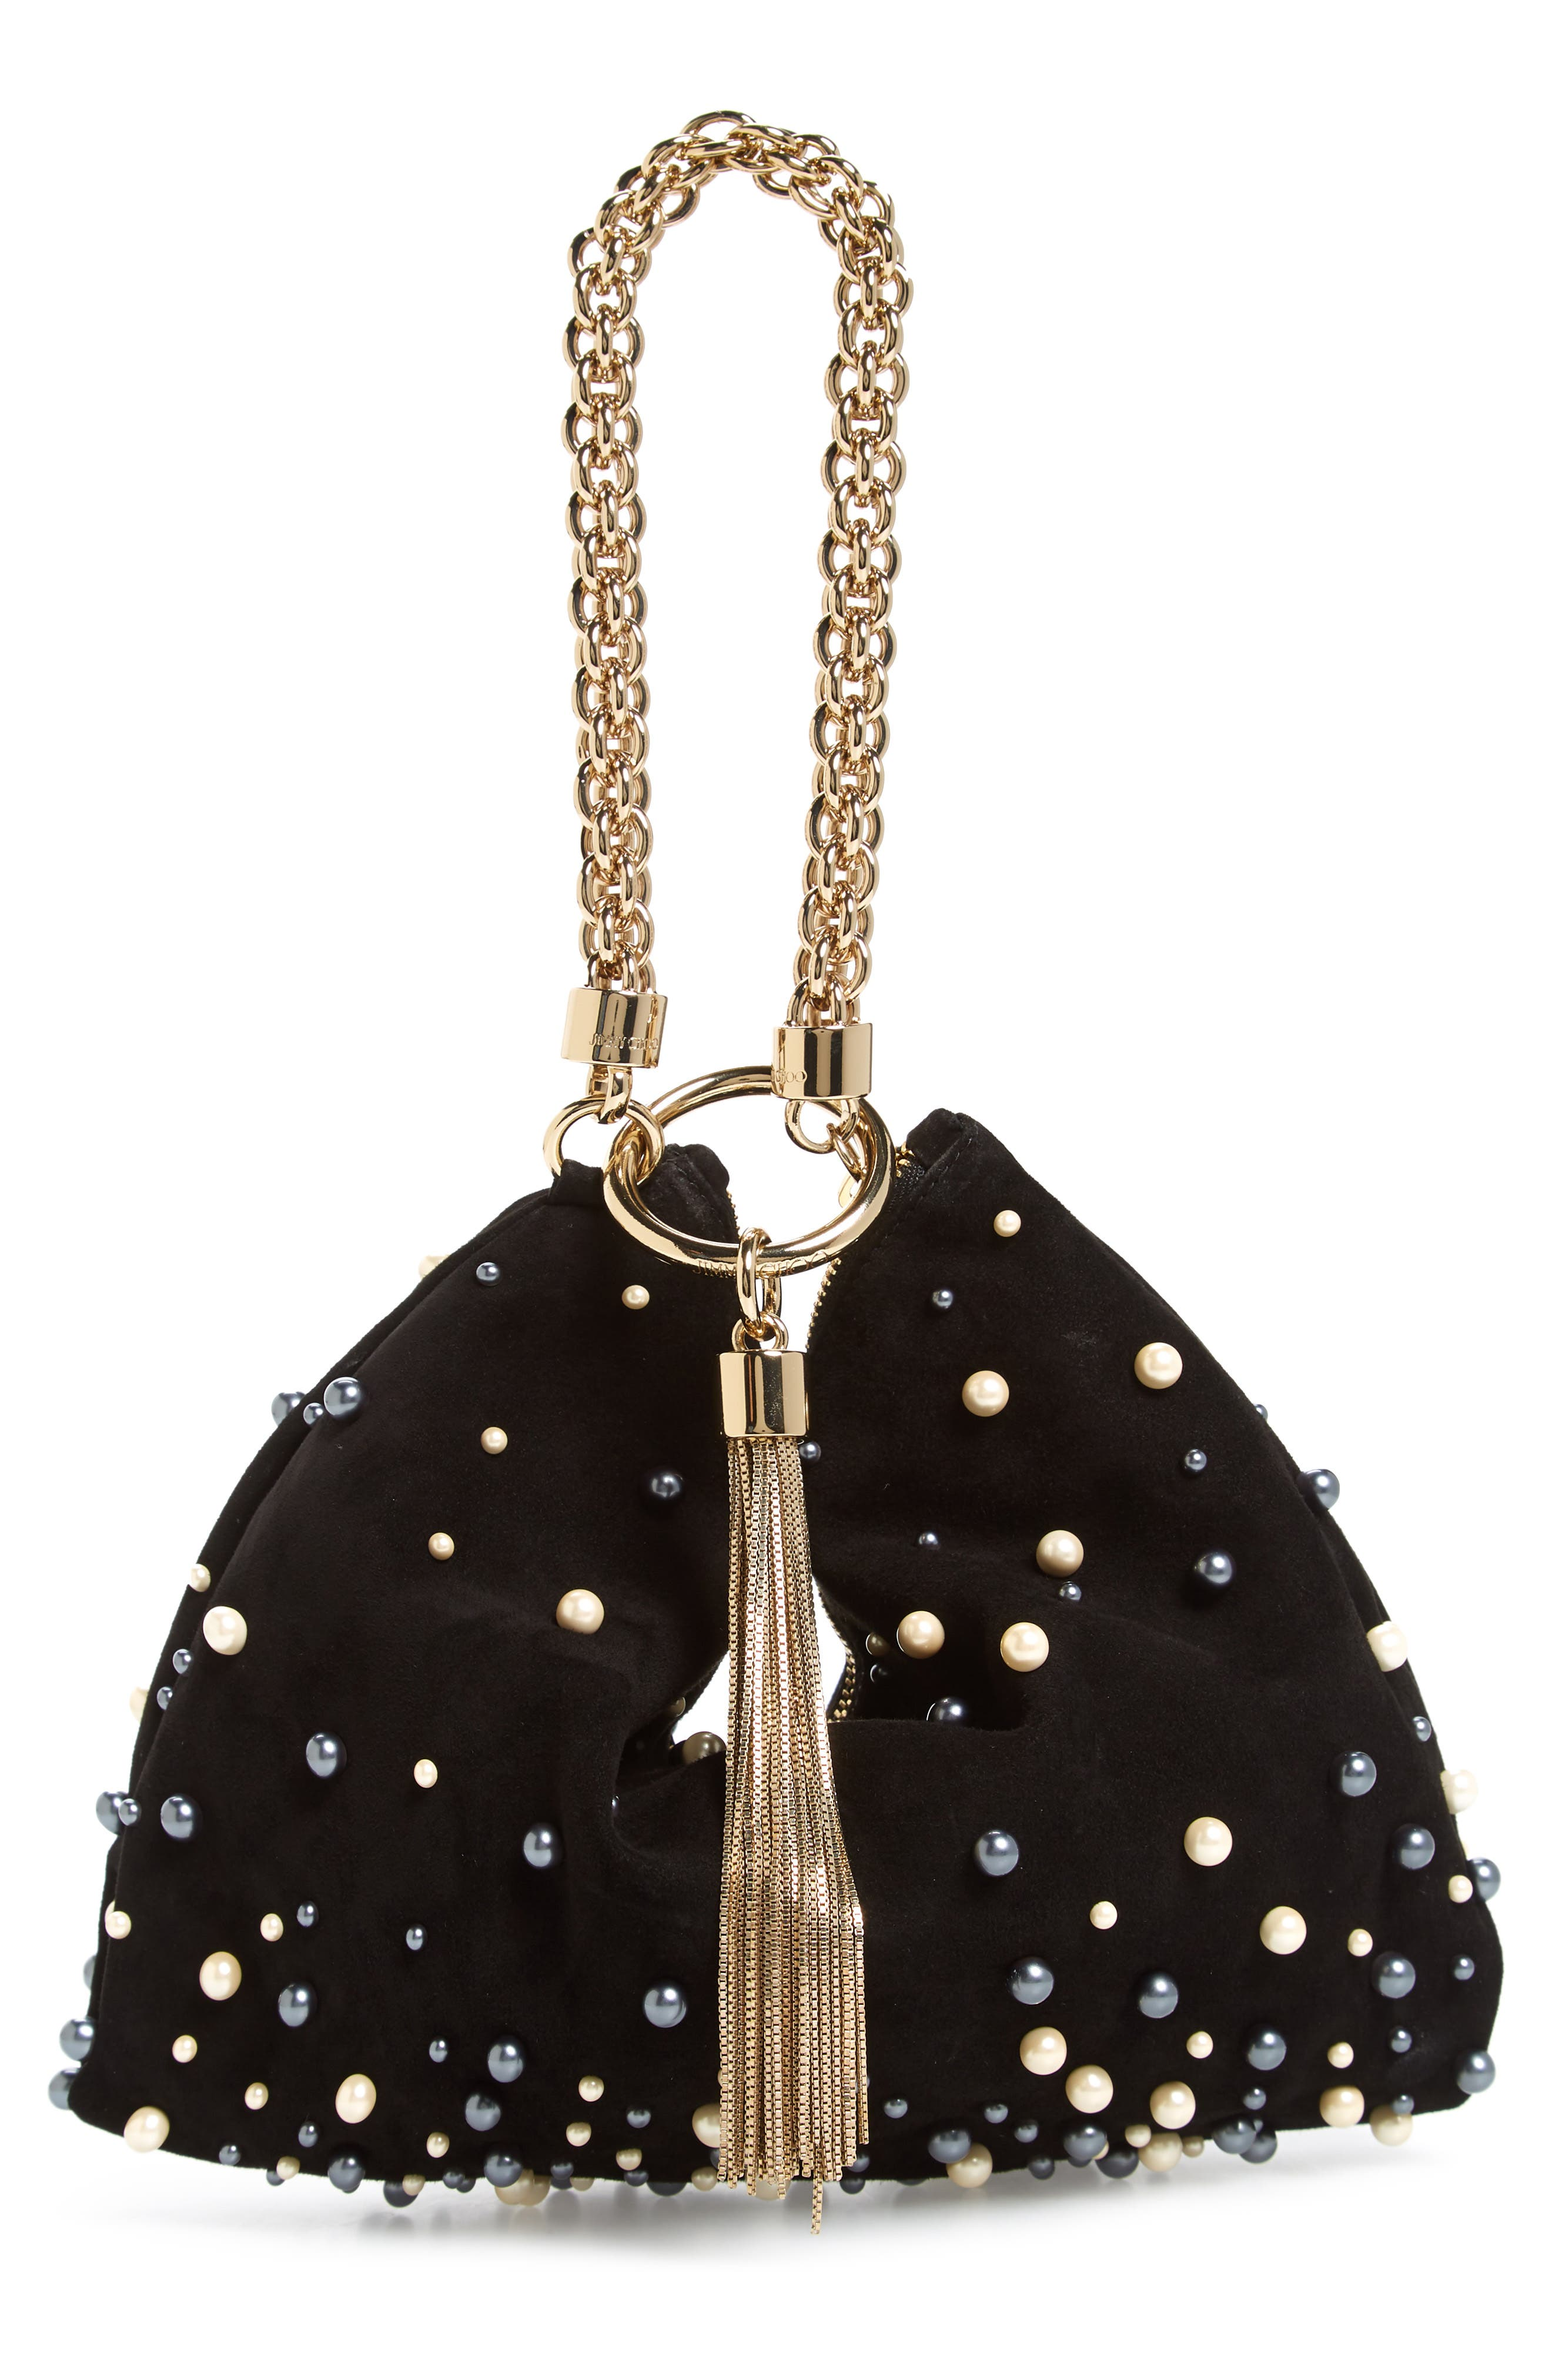 Callie Imitation Pearl Embellished Suede Clutch,                             Alternate thumbnail 3, color,                             001